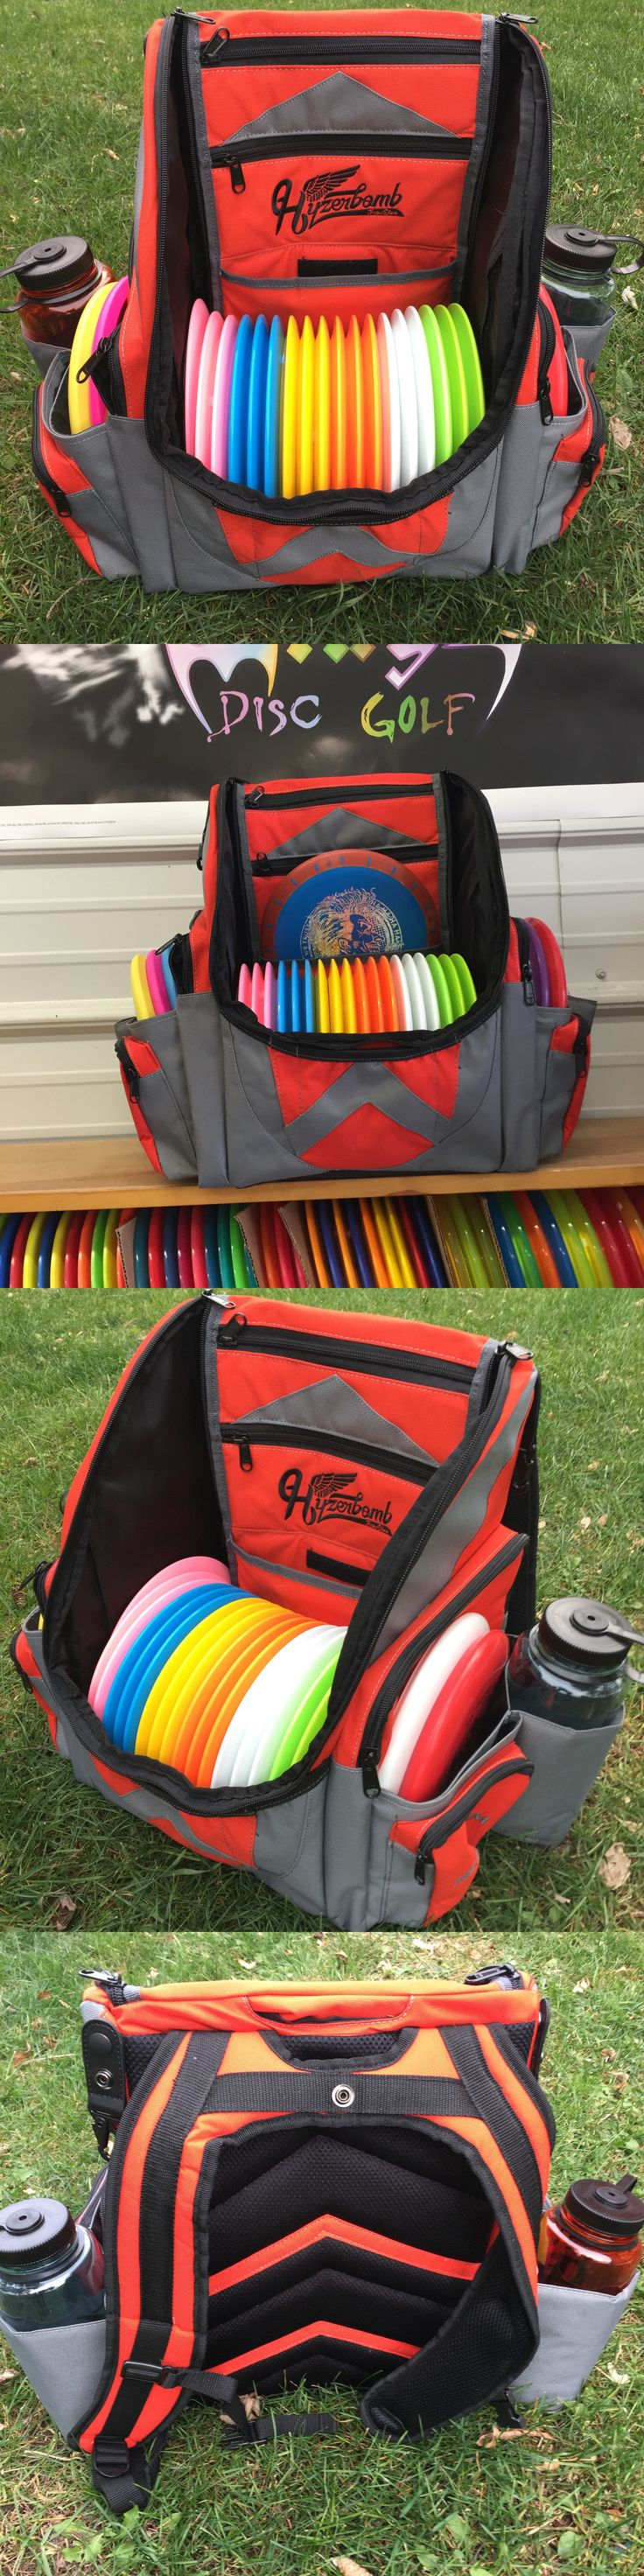 Disc Golf 20851: Wingz Disc Golf * Brand New Millenium Hyzerbomb Flakx Backpack * Holds 25+ Discs -> BUY IT NOW ONLY: $165 on eBay!